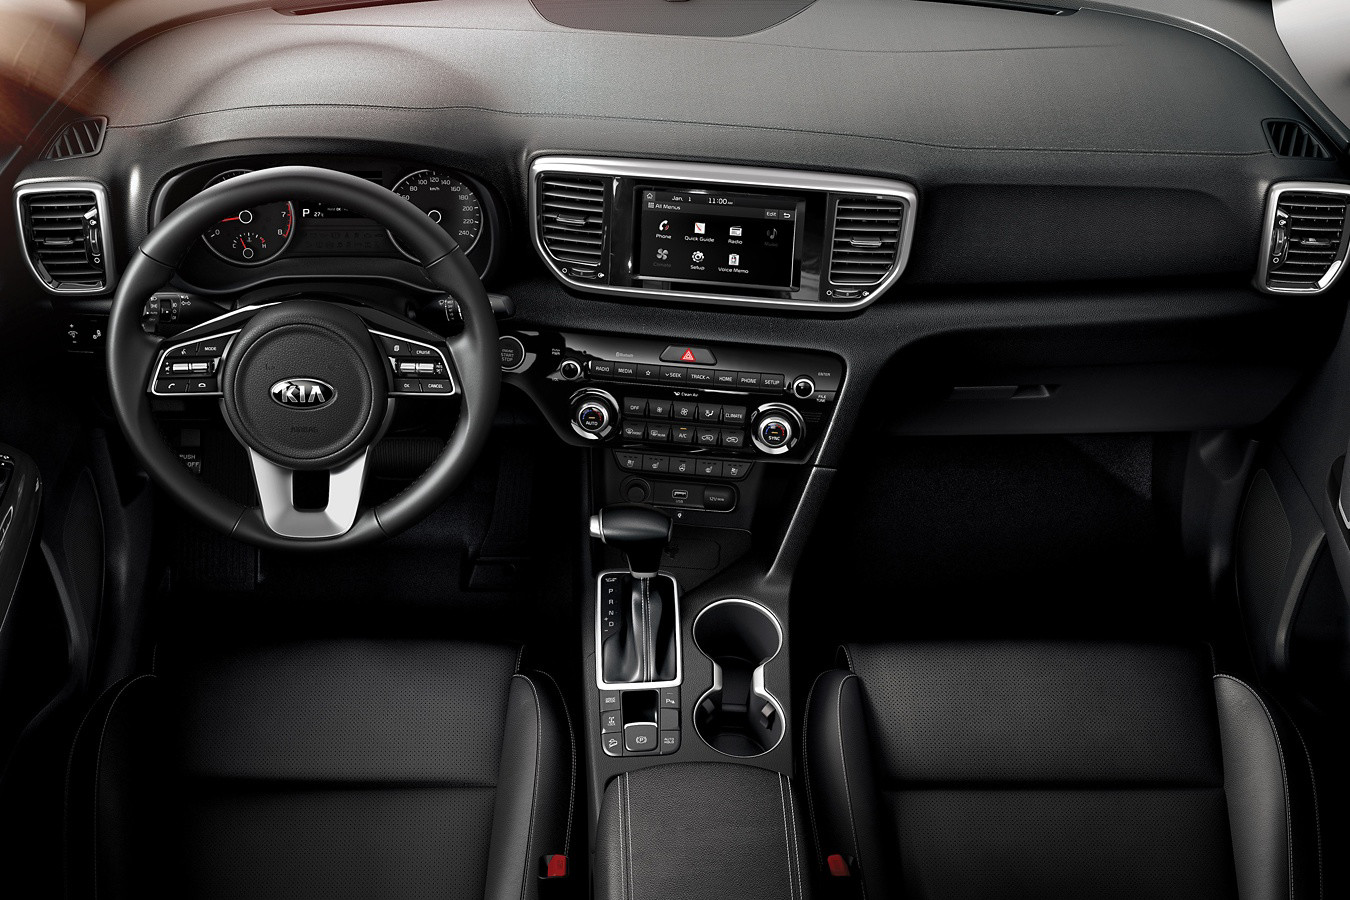 2020 Kia Sportage Front Seats and Dashboard